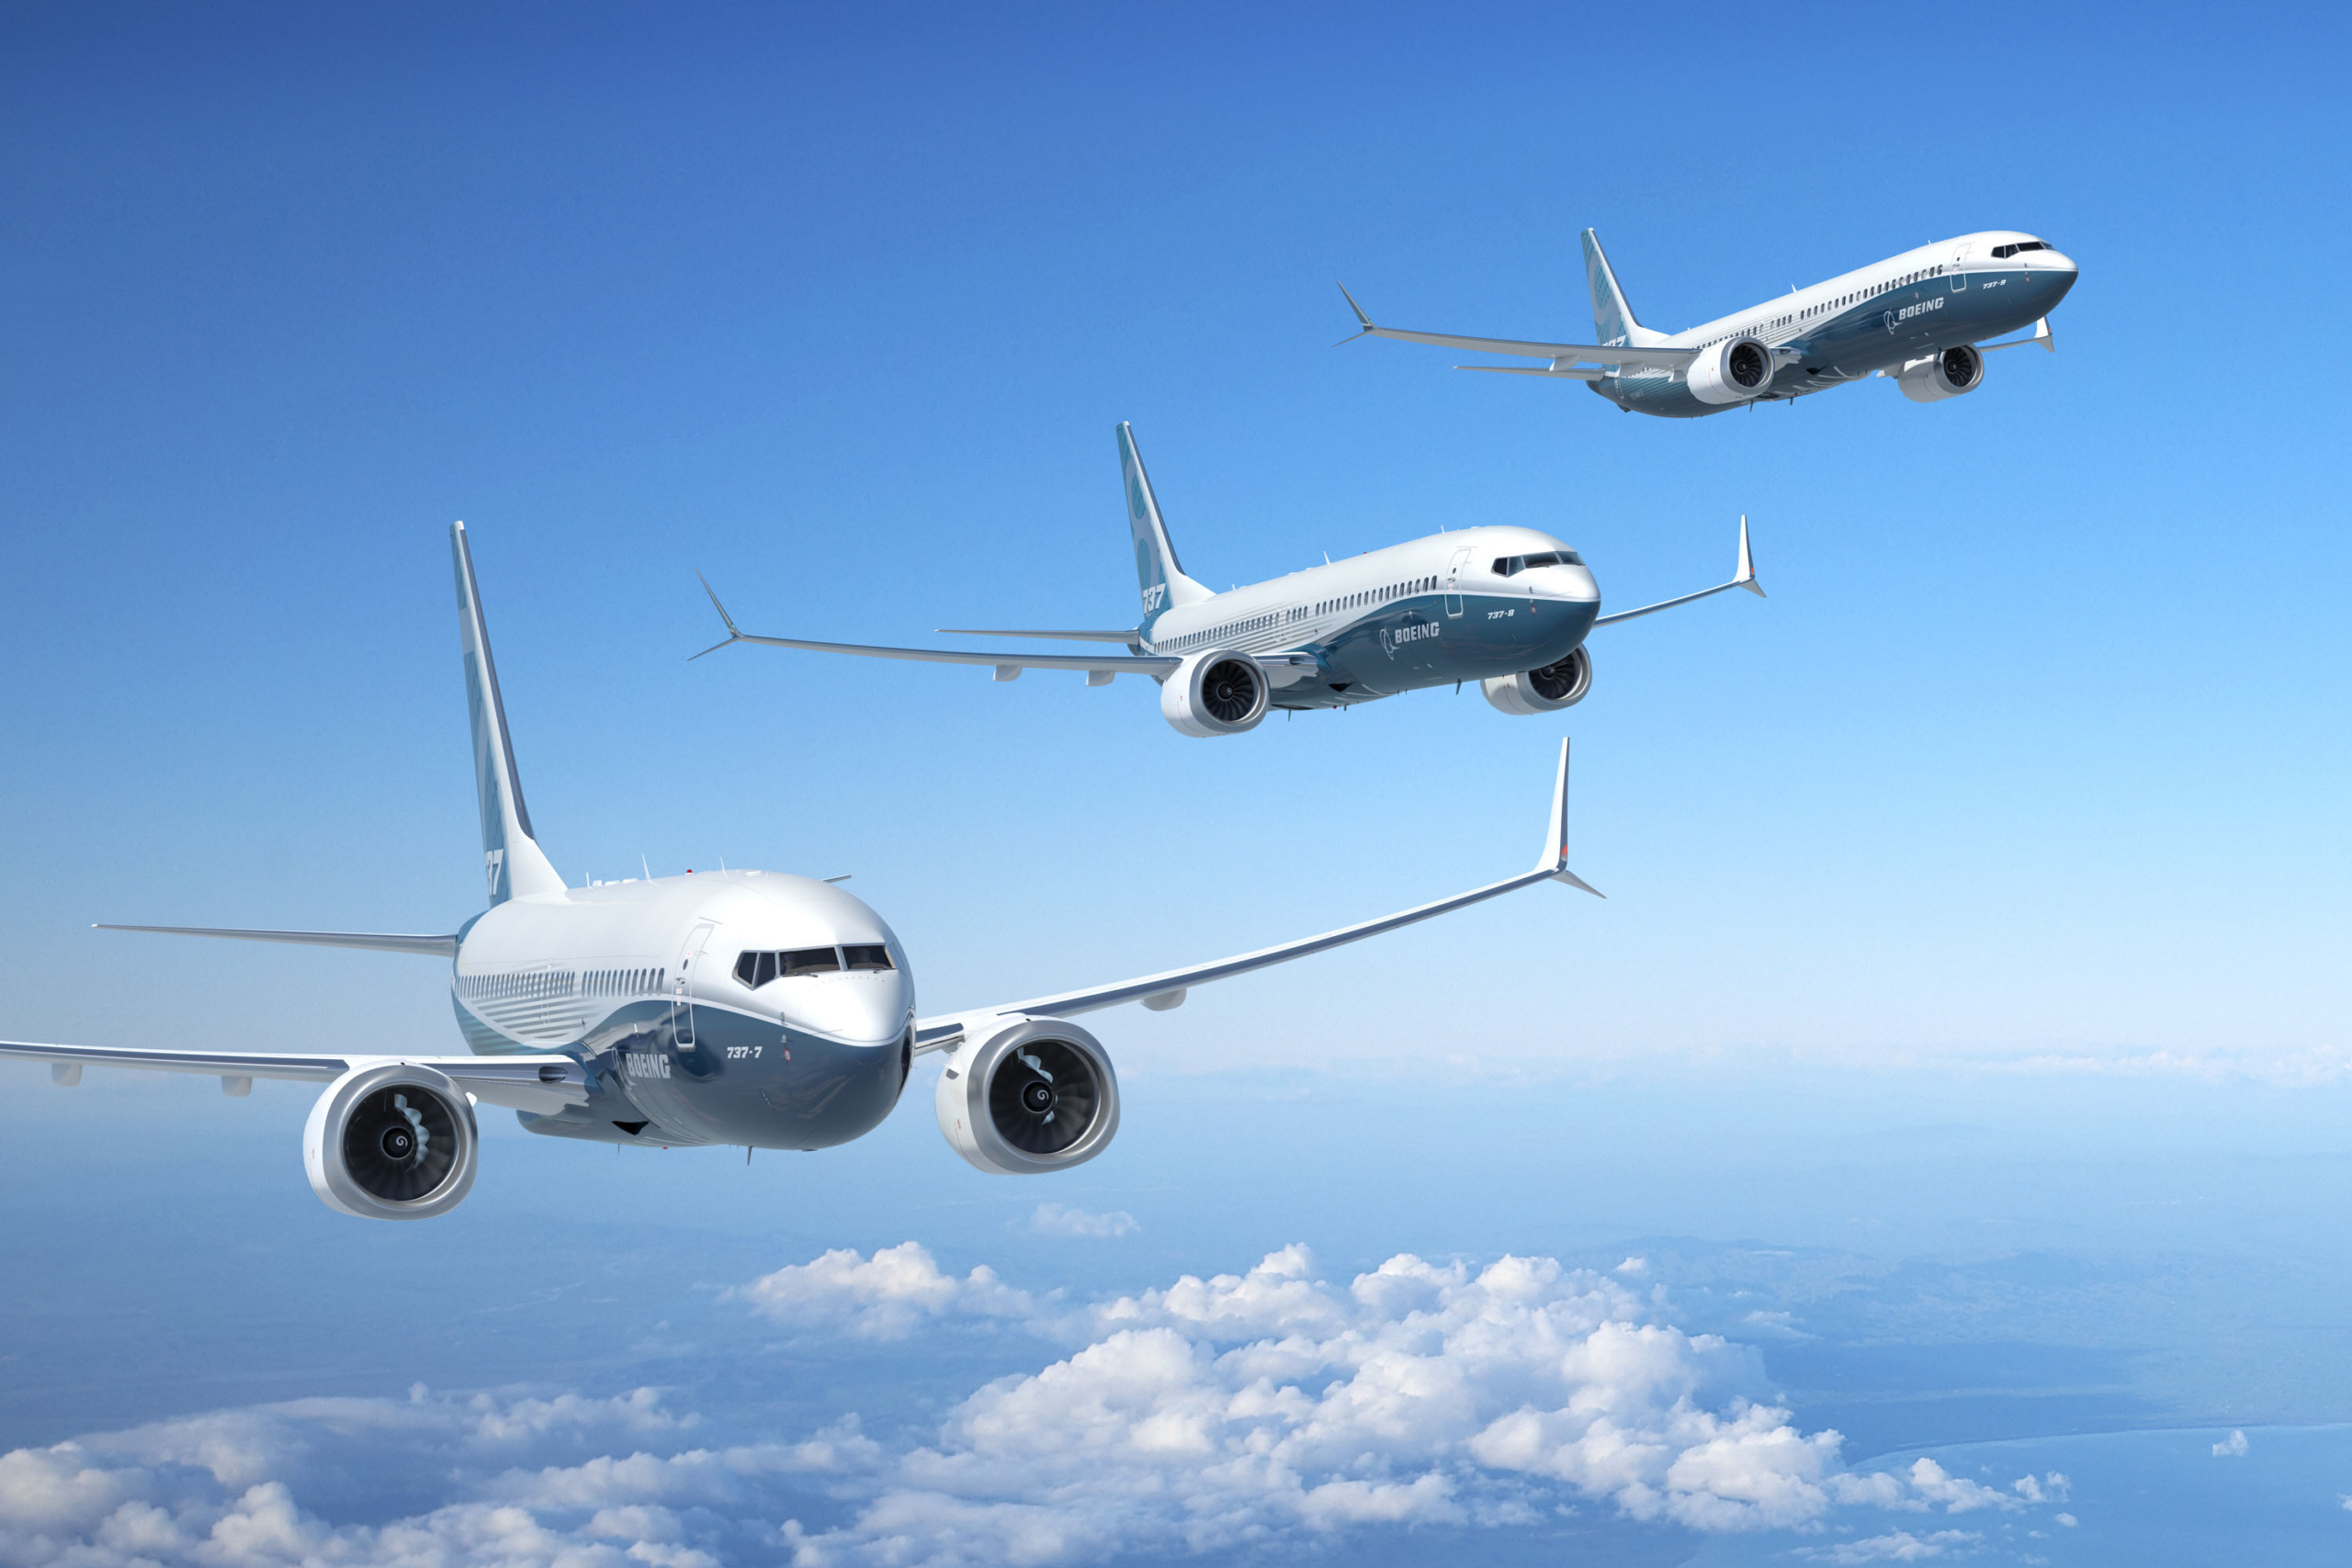 Boeing: Versatility Will Be A Key Consideration For Airline Fleets